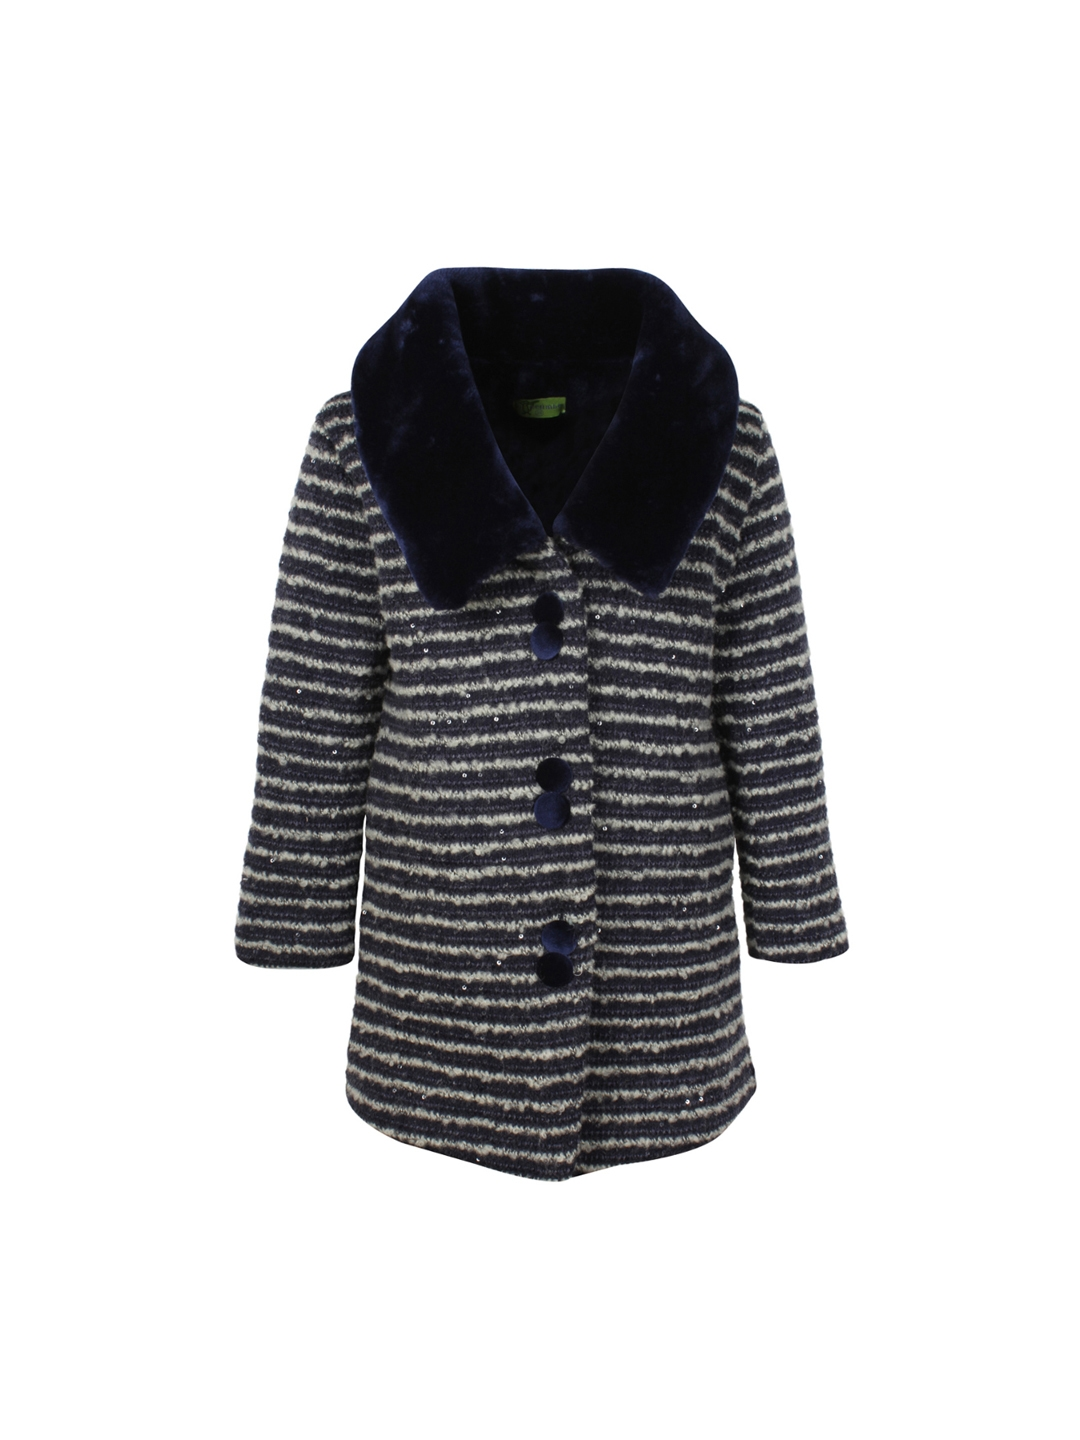 c920a0d66f52 Buy CUTECUMBER Girls White   Navy Blue Striped Fur Coat - Coats for ...